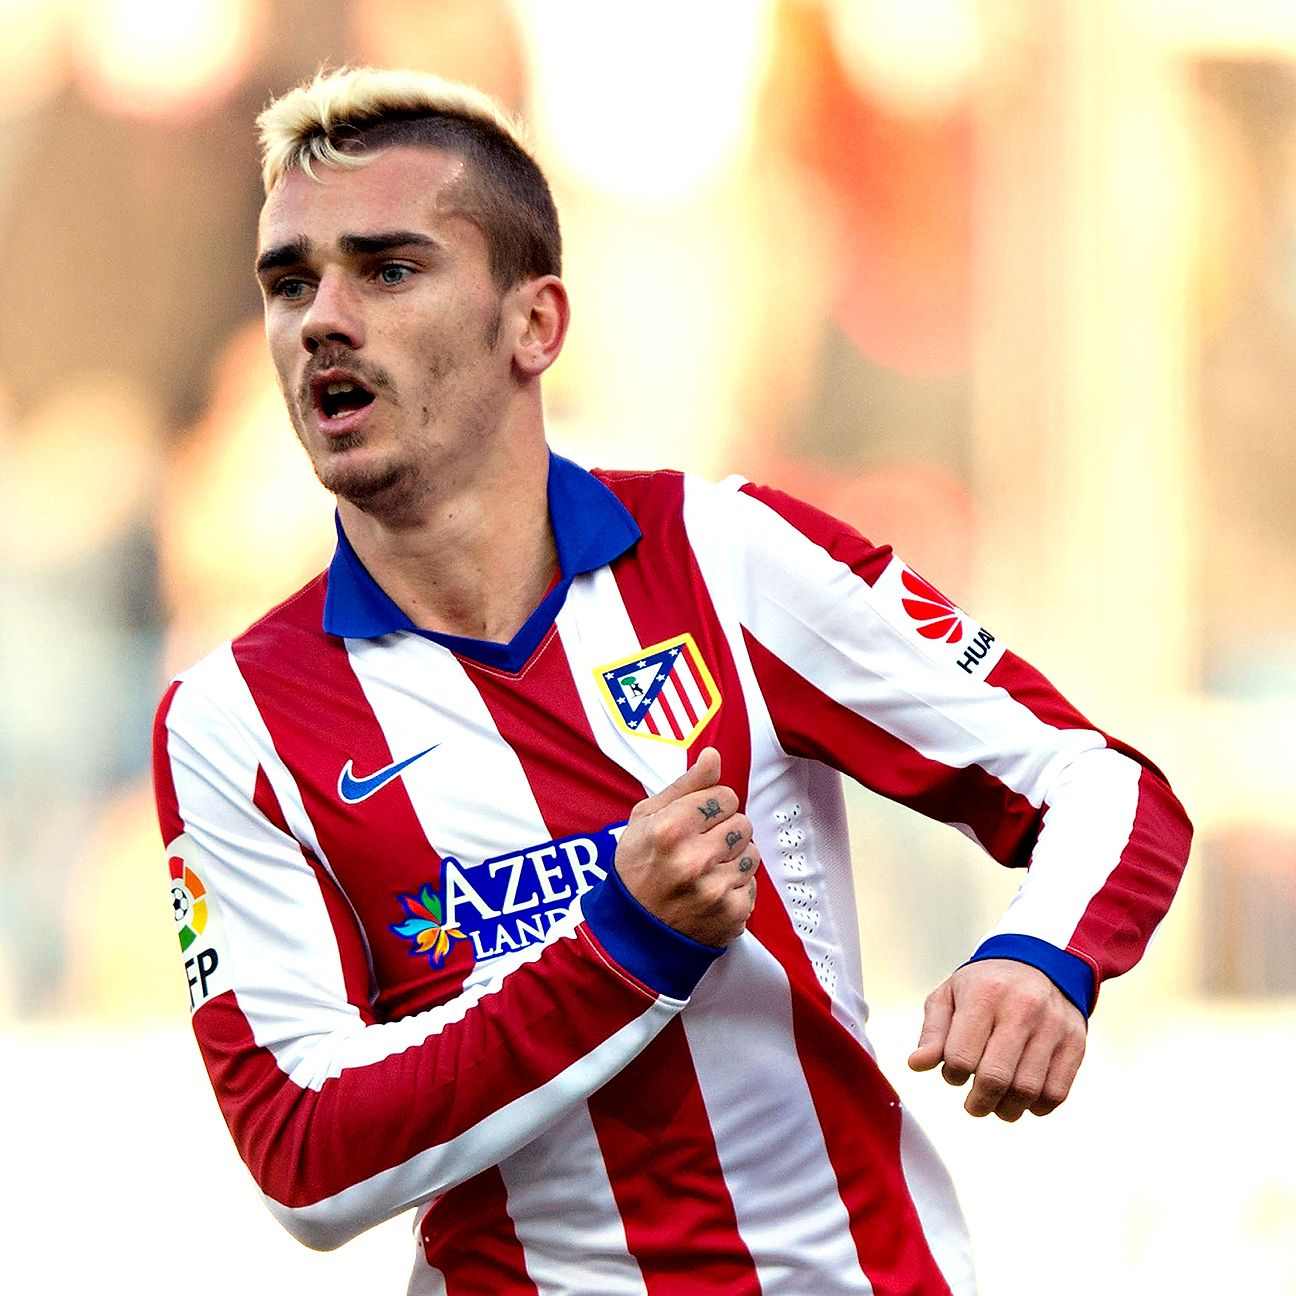 After struggling in the early stages of the season, Antoine Griezmann has gone on a tear and currently has 22 goals in 32 La Liga matches.